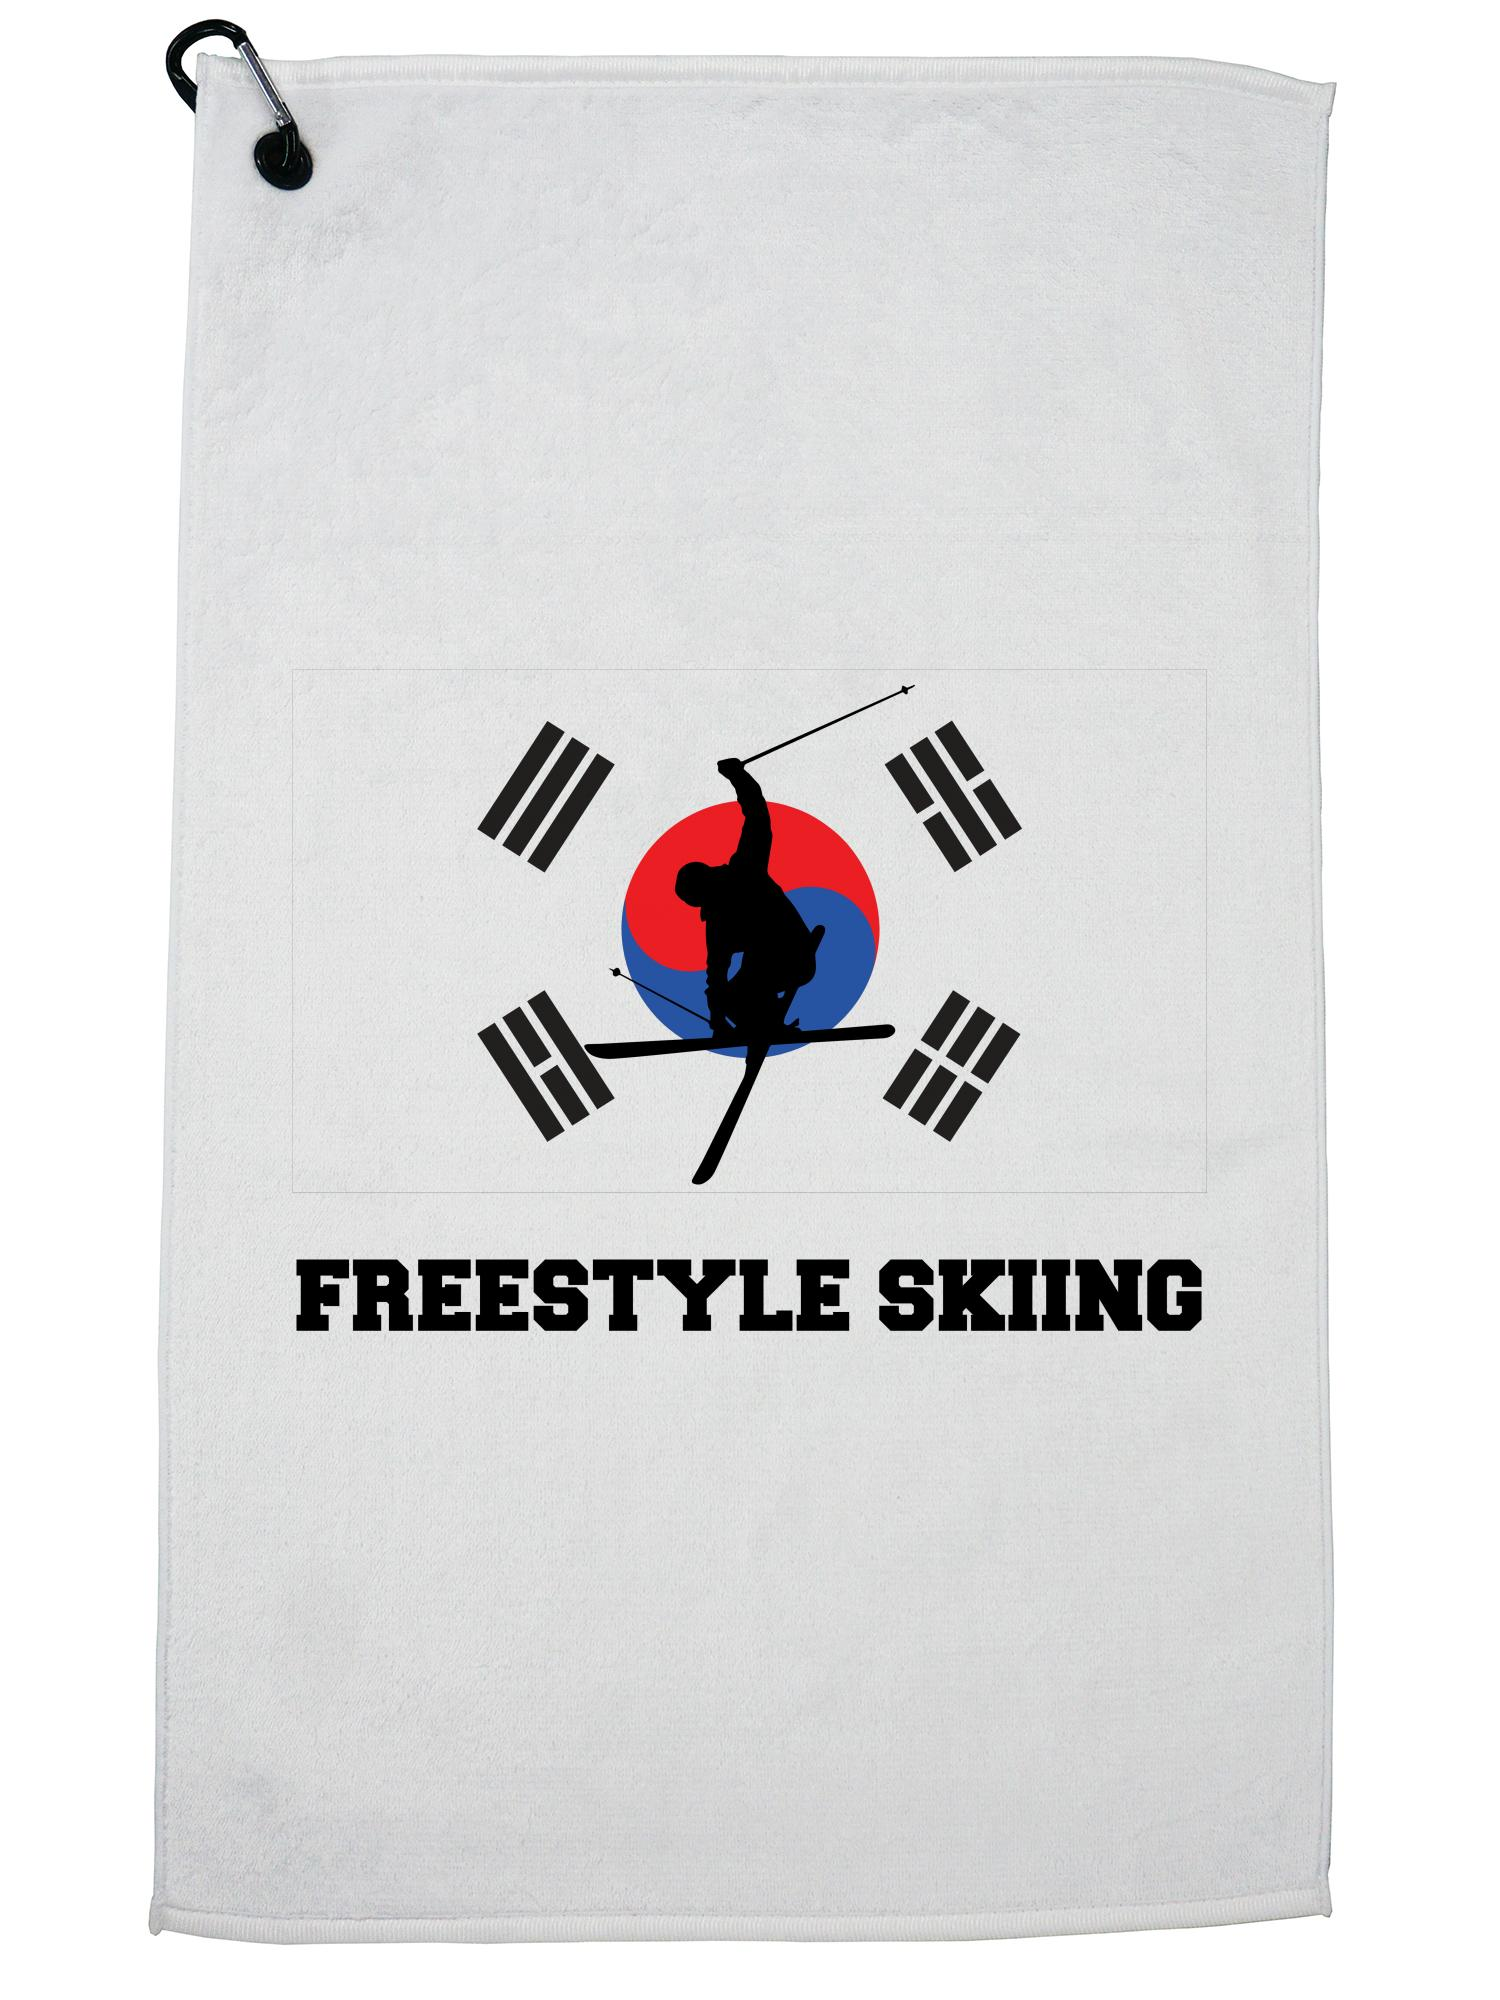 South Korea Olympic Freestyle Skiing Flag Silhouette Golf Towel with Carabiner Clip by Hollywood Thread